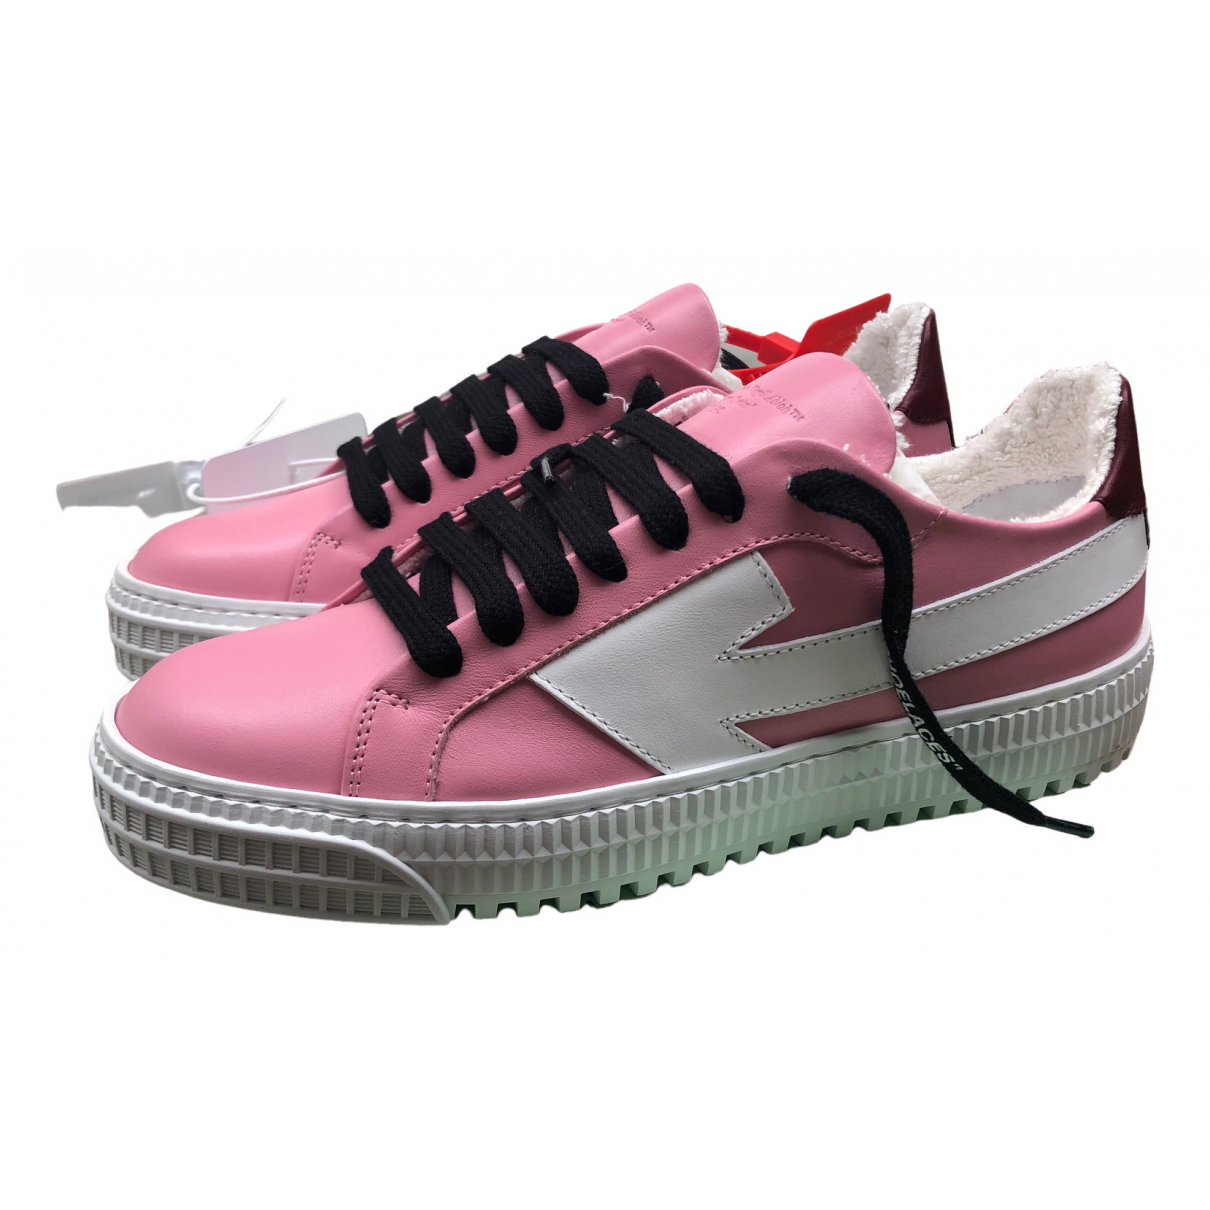 Off-white Arrow Pink Leather Trainers for Women 35 EU